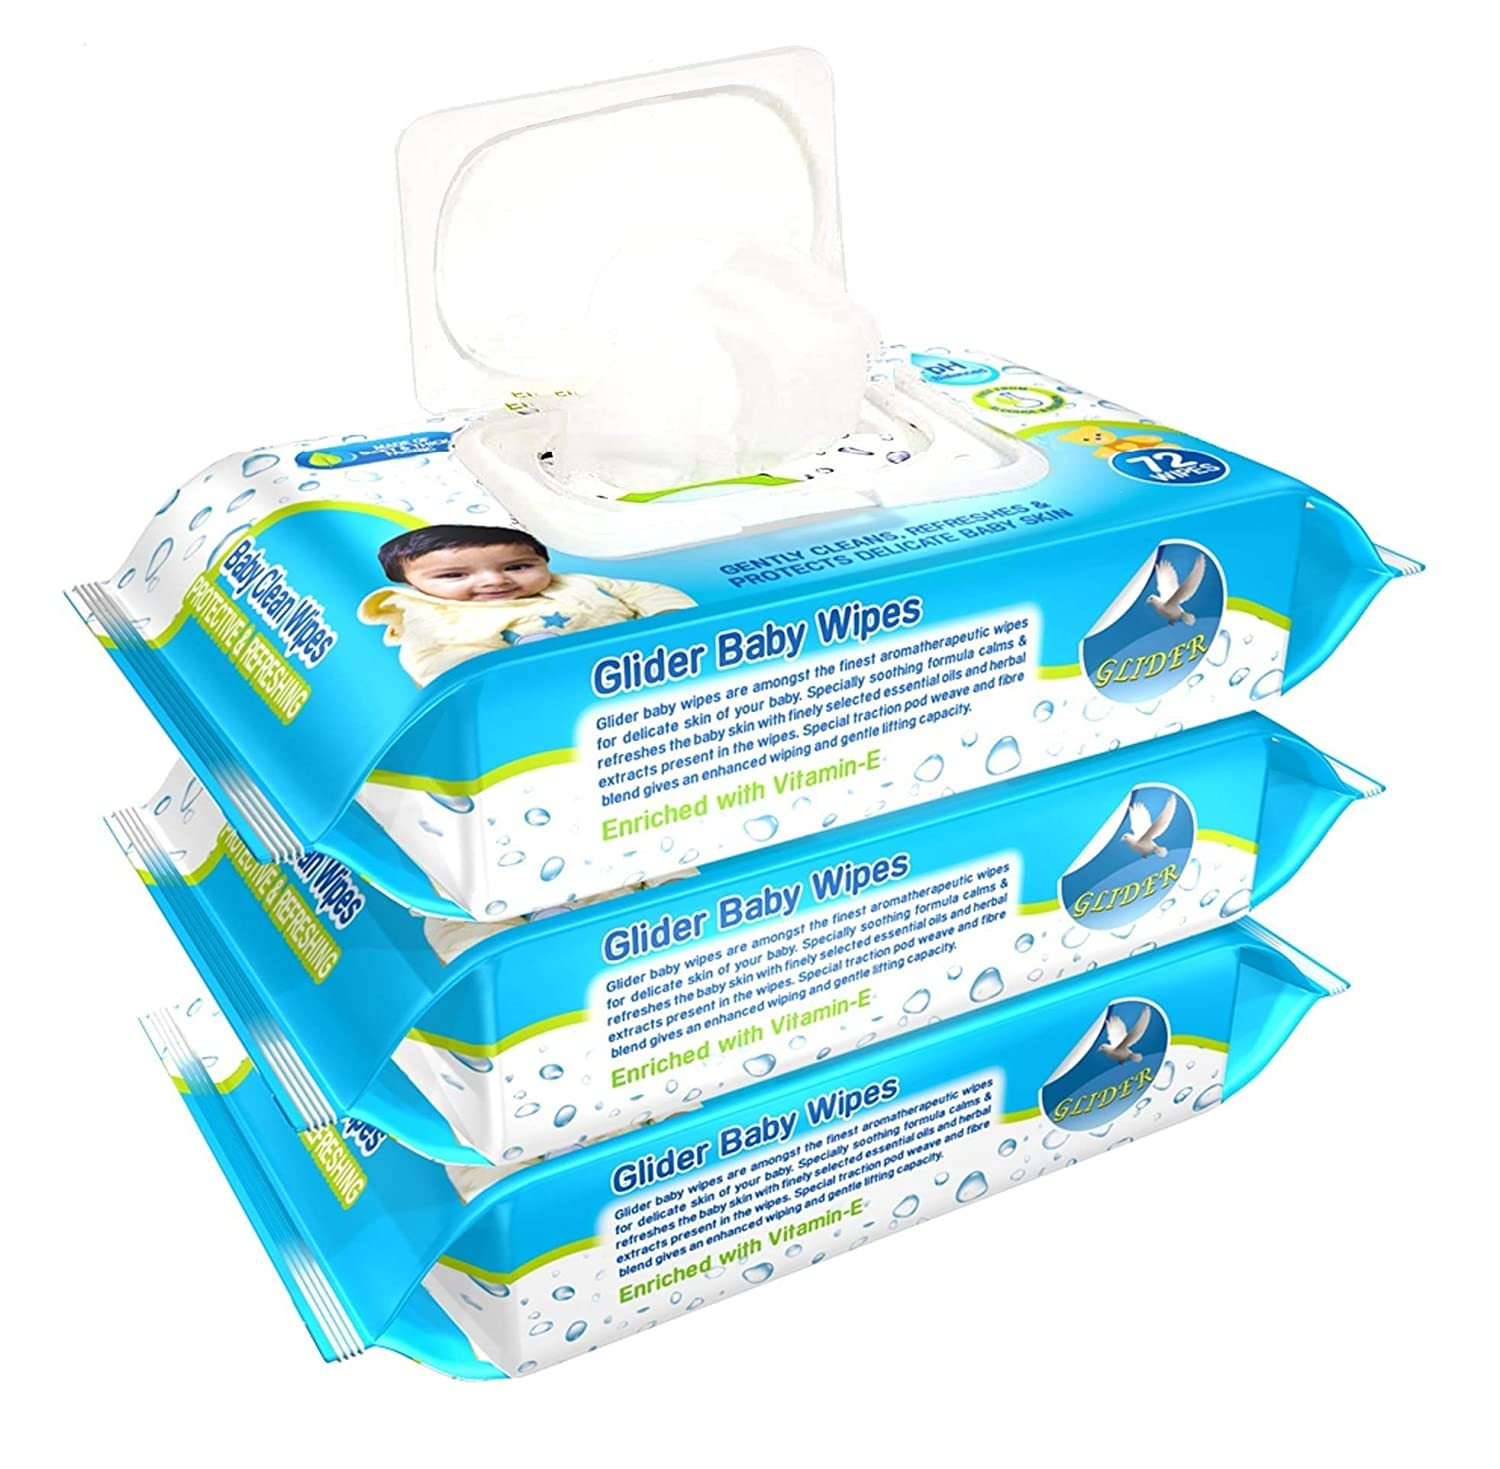 Glider Baby Wipes Pack of 3 (216 Wipes)